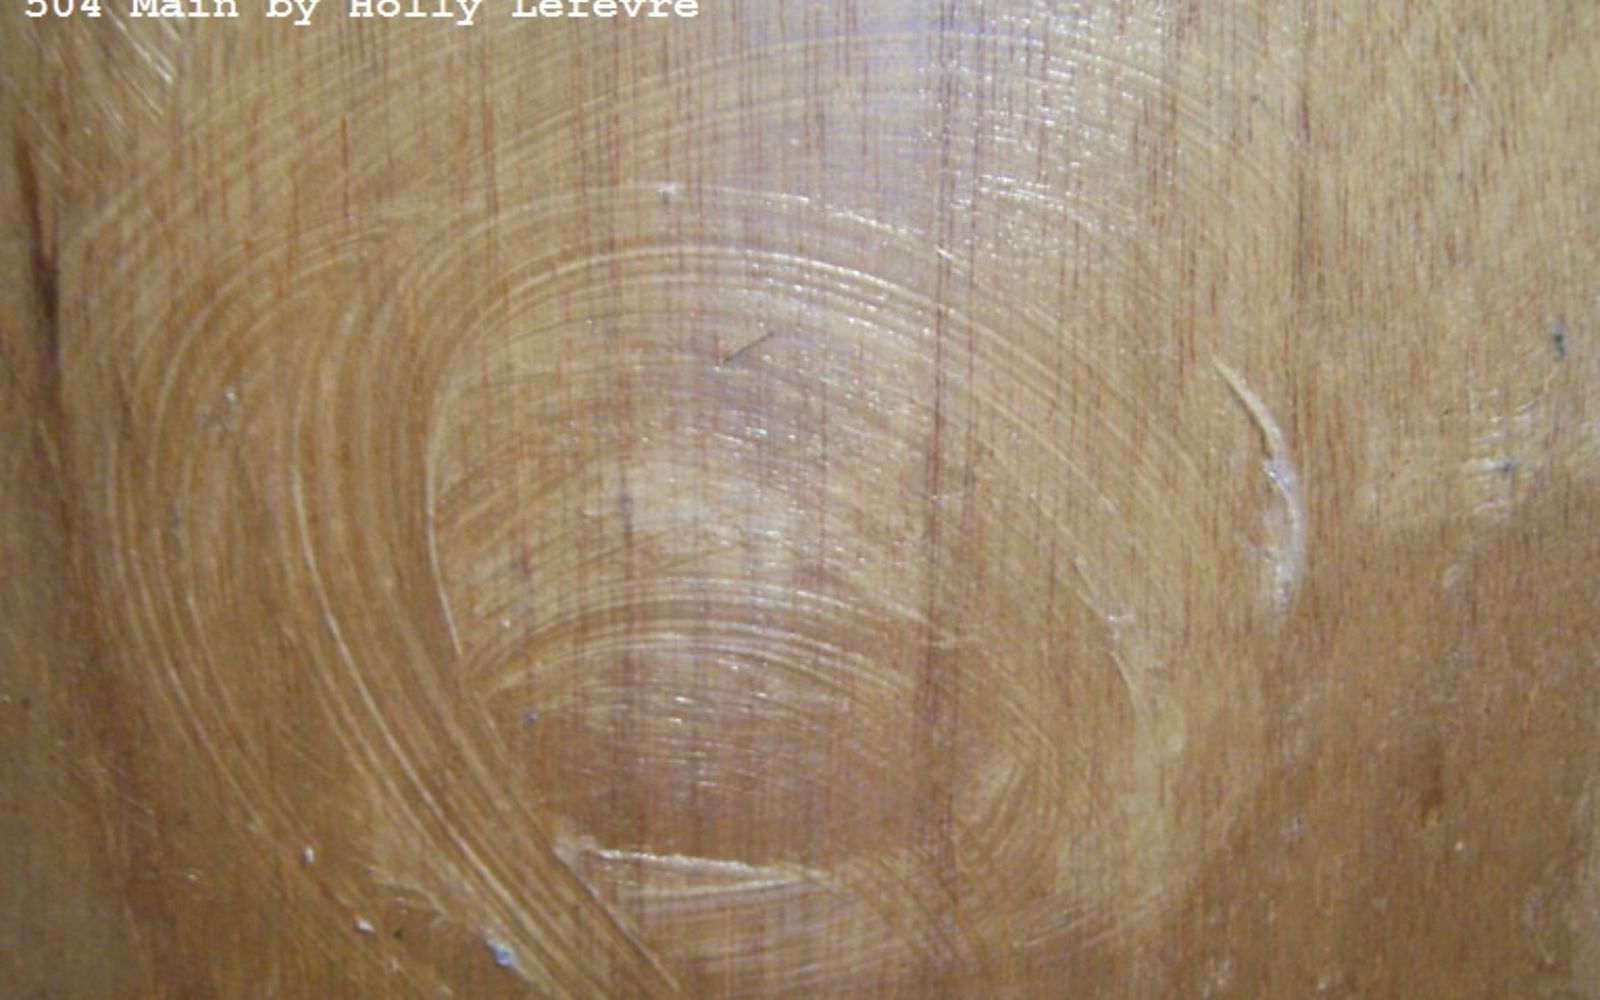 s 30 tricks to help you fix the wood in your home, Apply Petroleum Jelly To Remove Water Damage